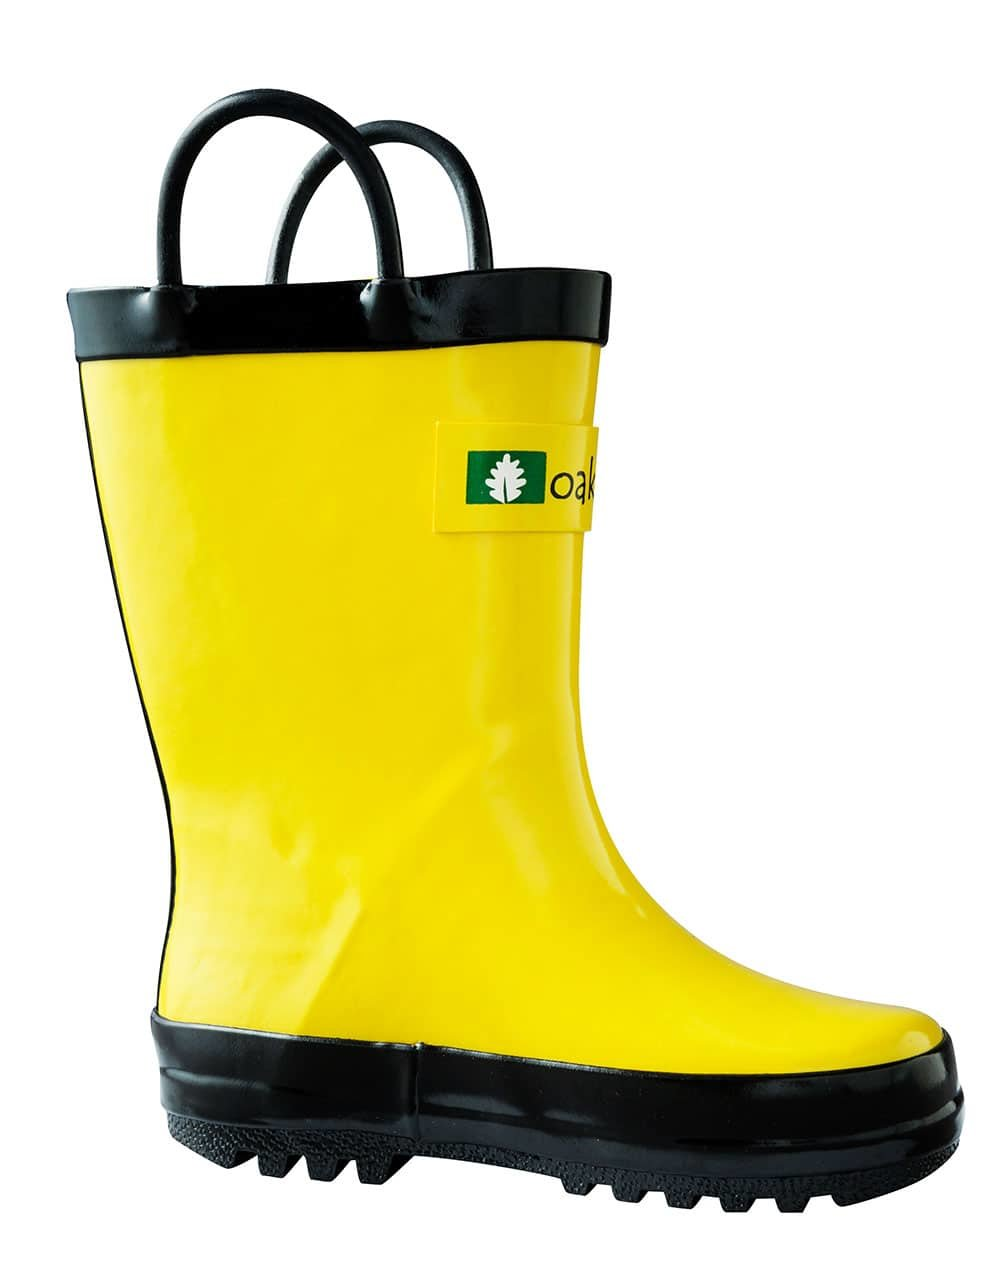 Children's Rubber Rain Boots, Yellow & Black